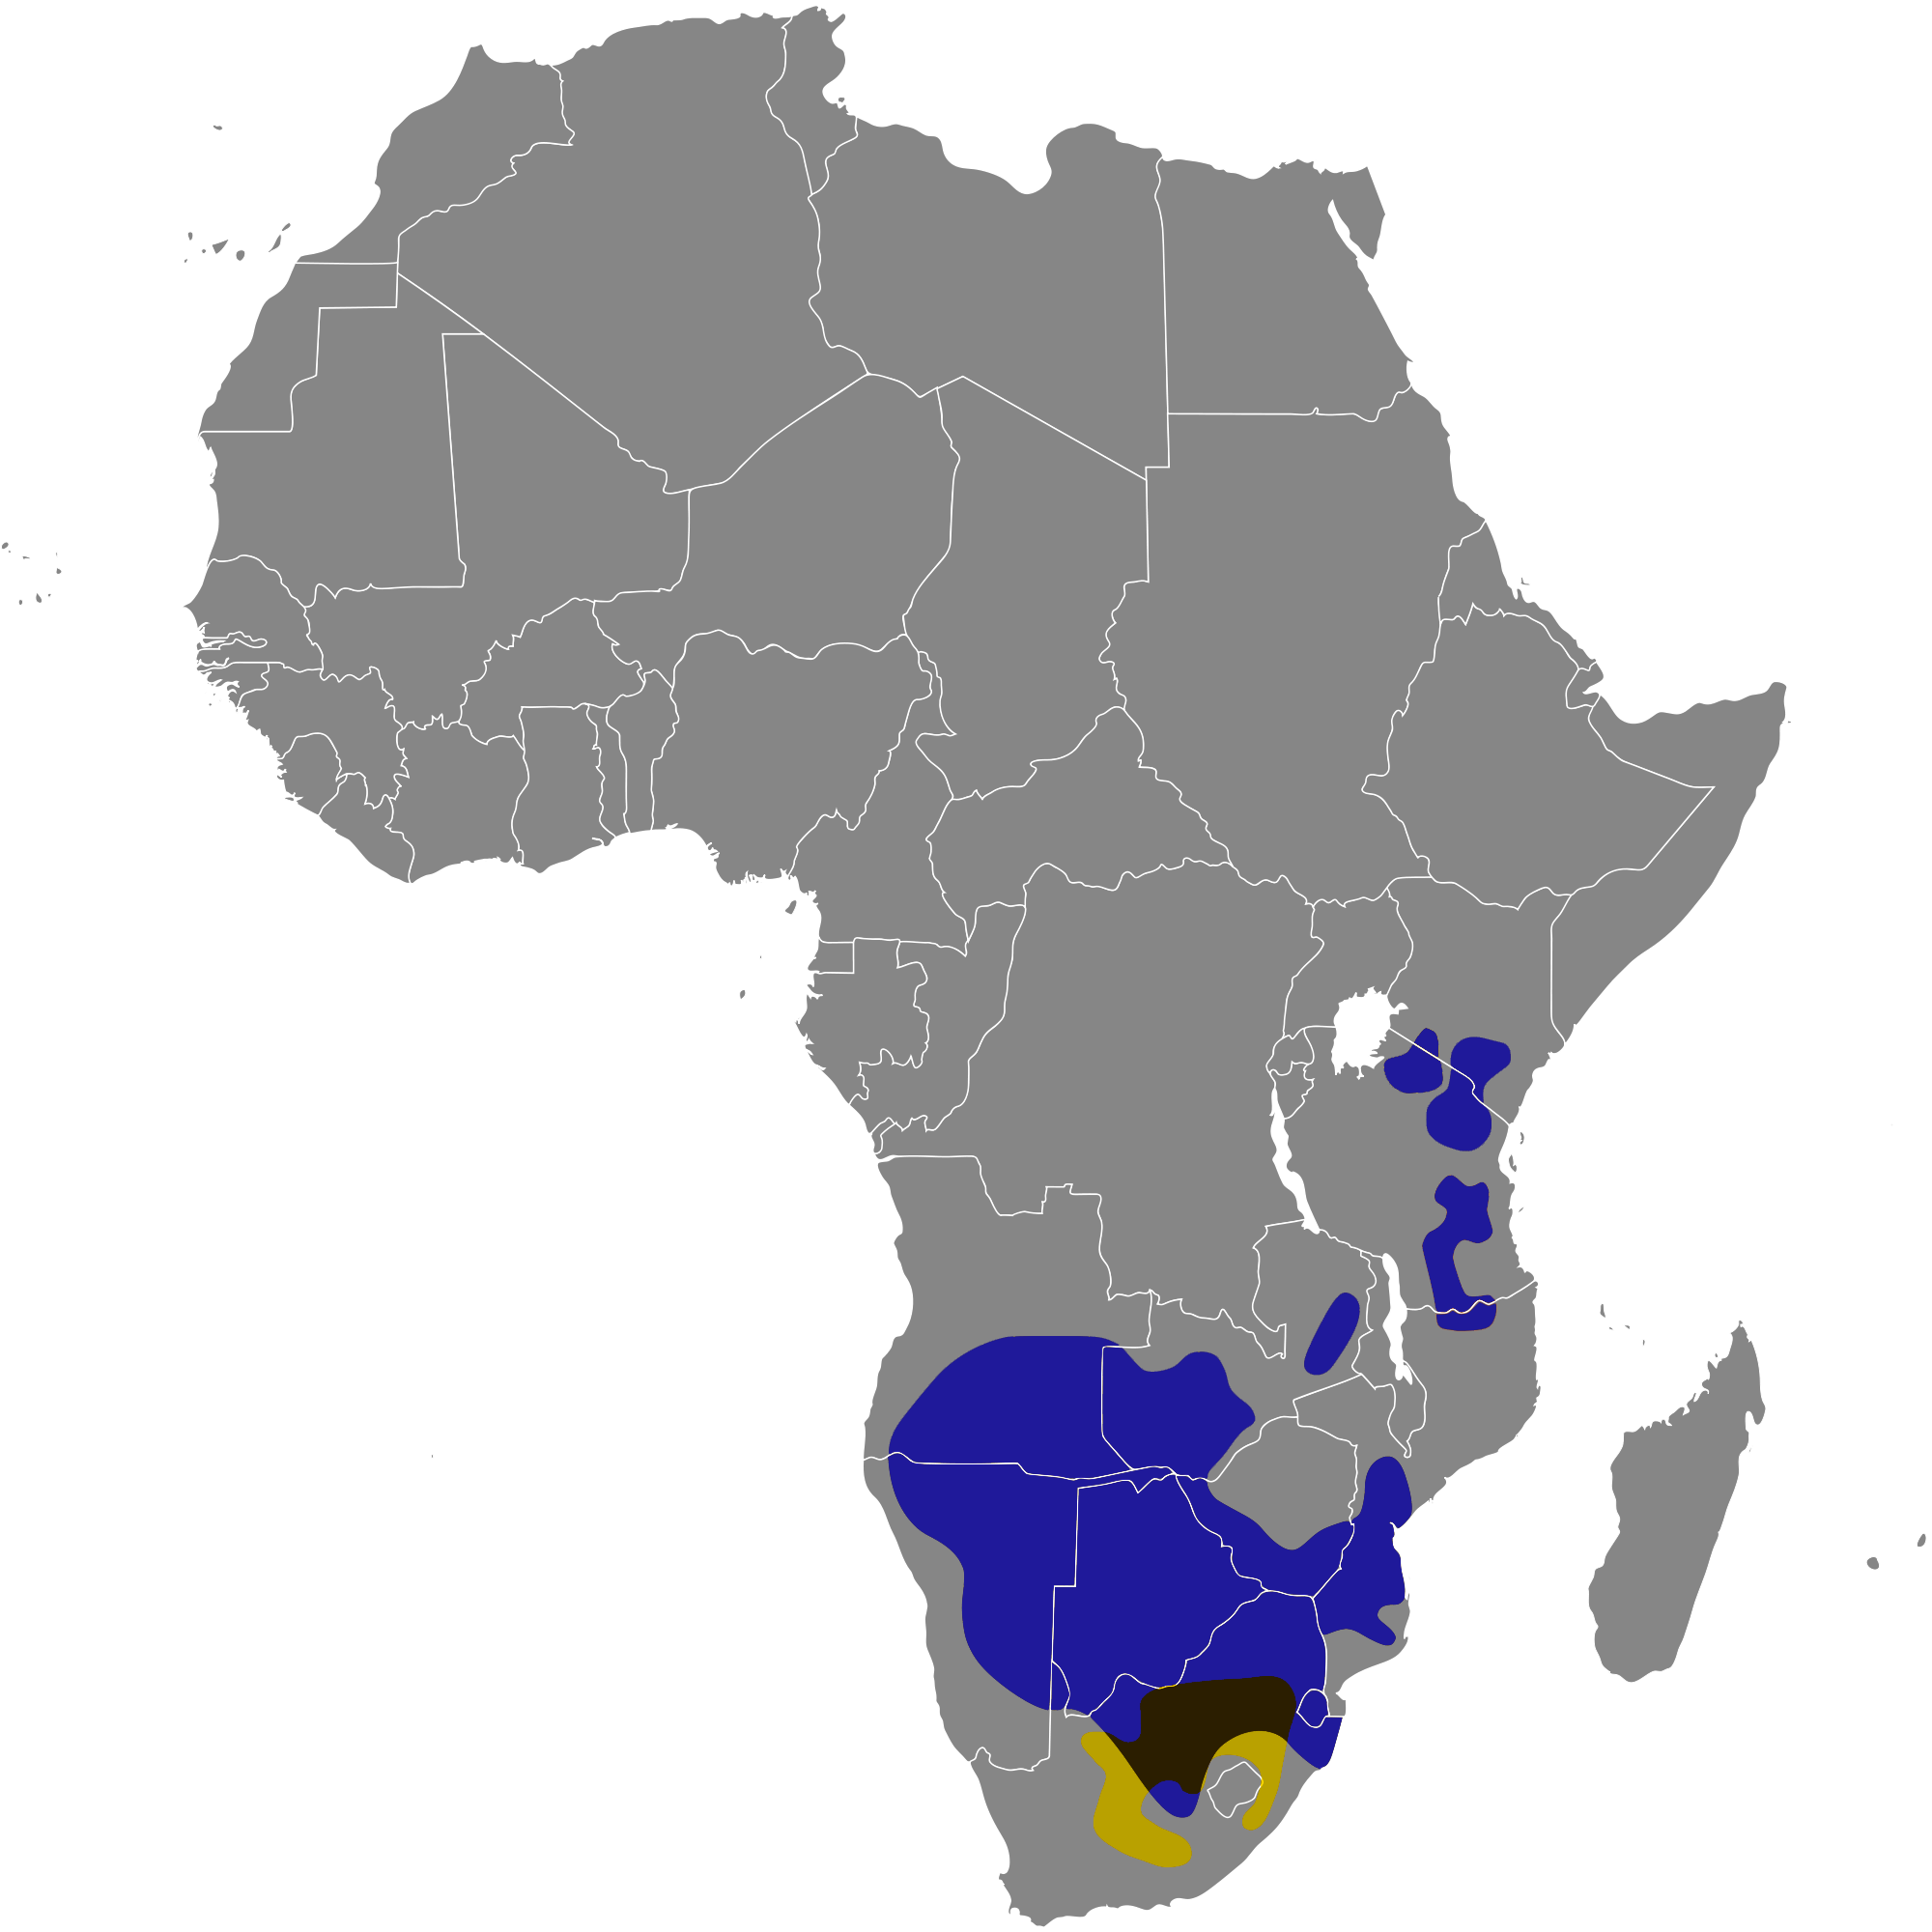 Approximate distribution of Wildebeest. Black wildebeest shown yellow. Blue wildebeest shown blue. Overlapping range shown brown.